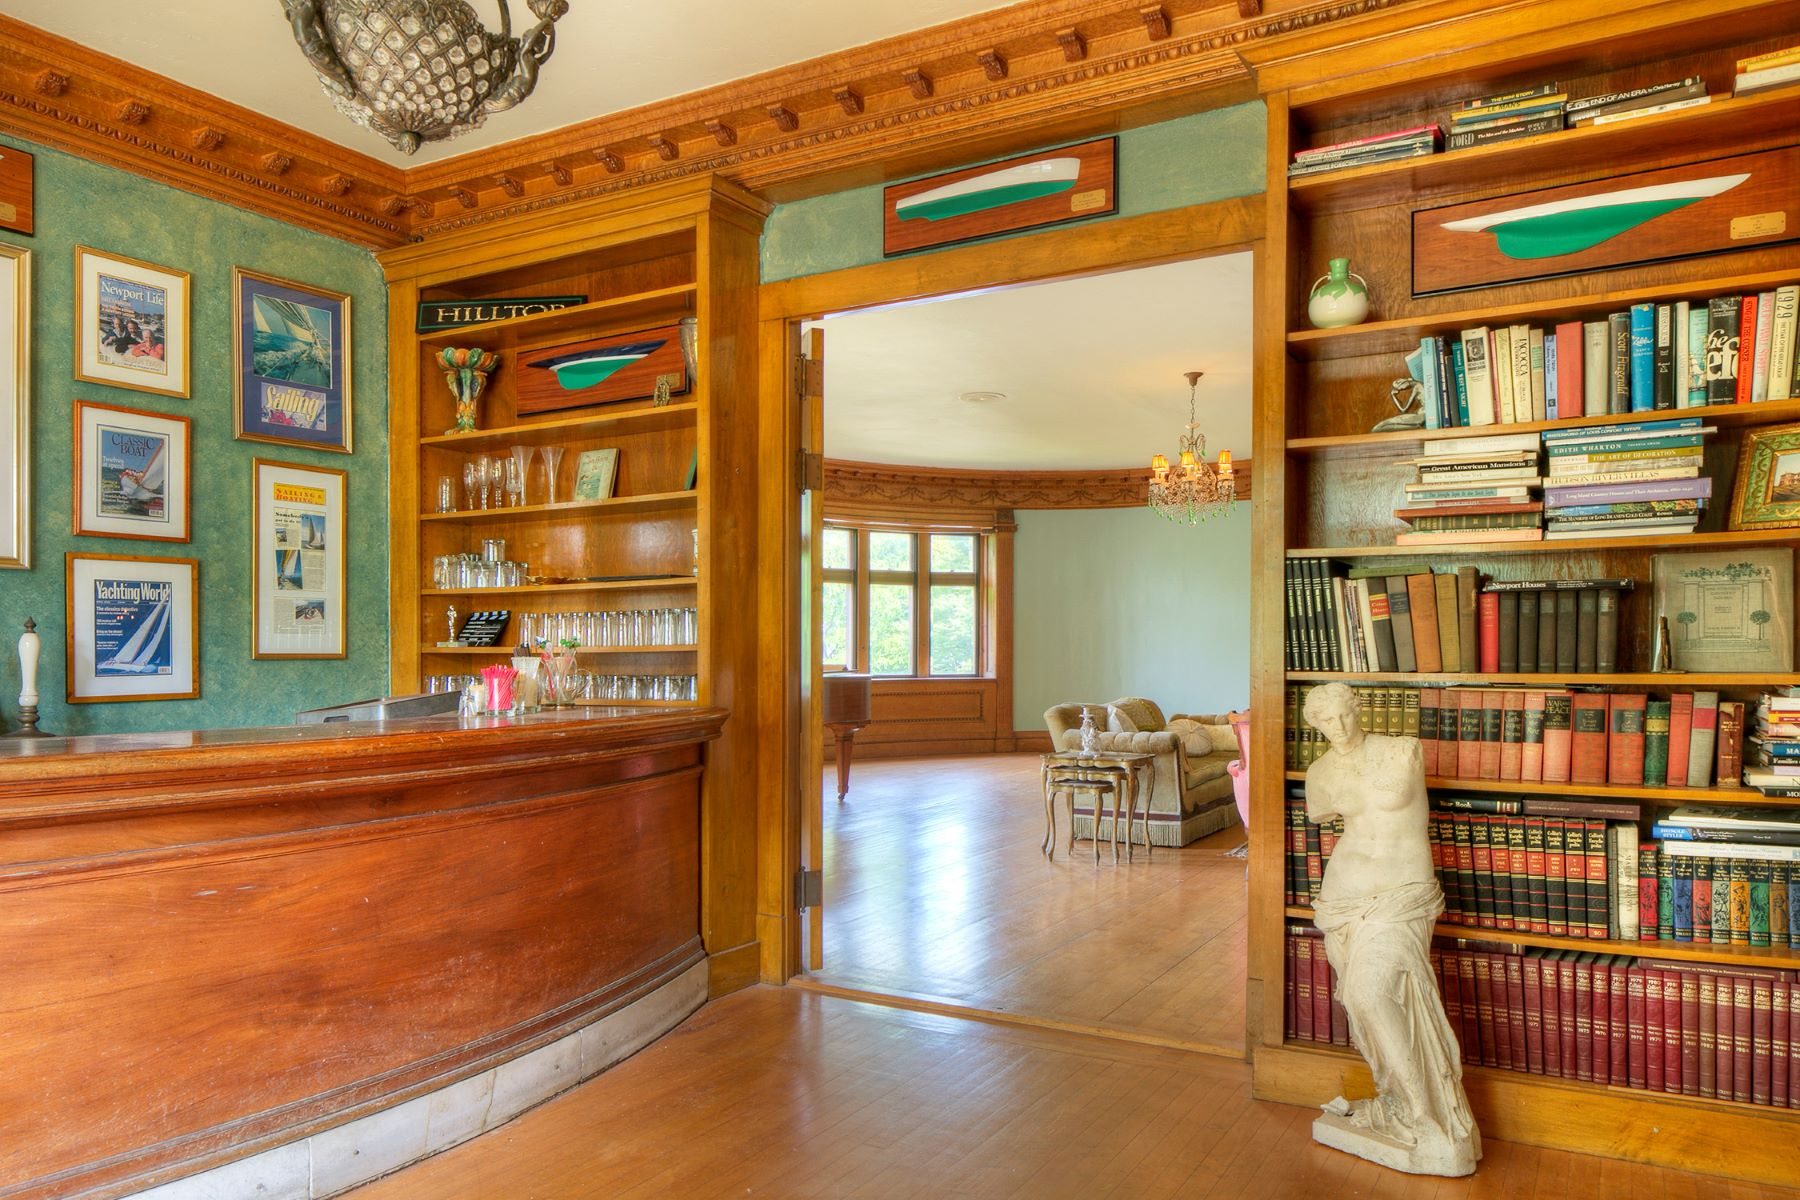 Additional photo for property listing at 'Hilltop' 97 105 Ruggles Avenue Newport, Rhode Island 02840 United States